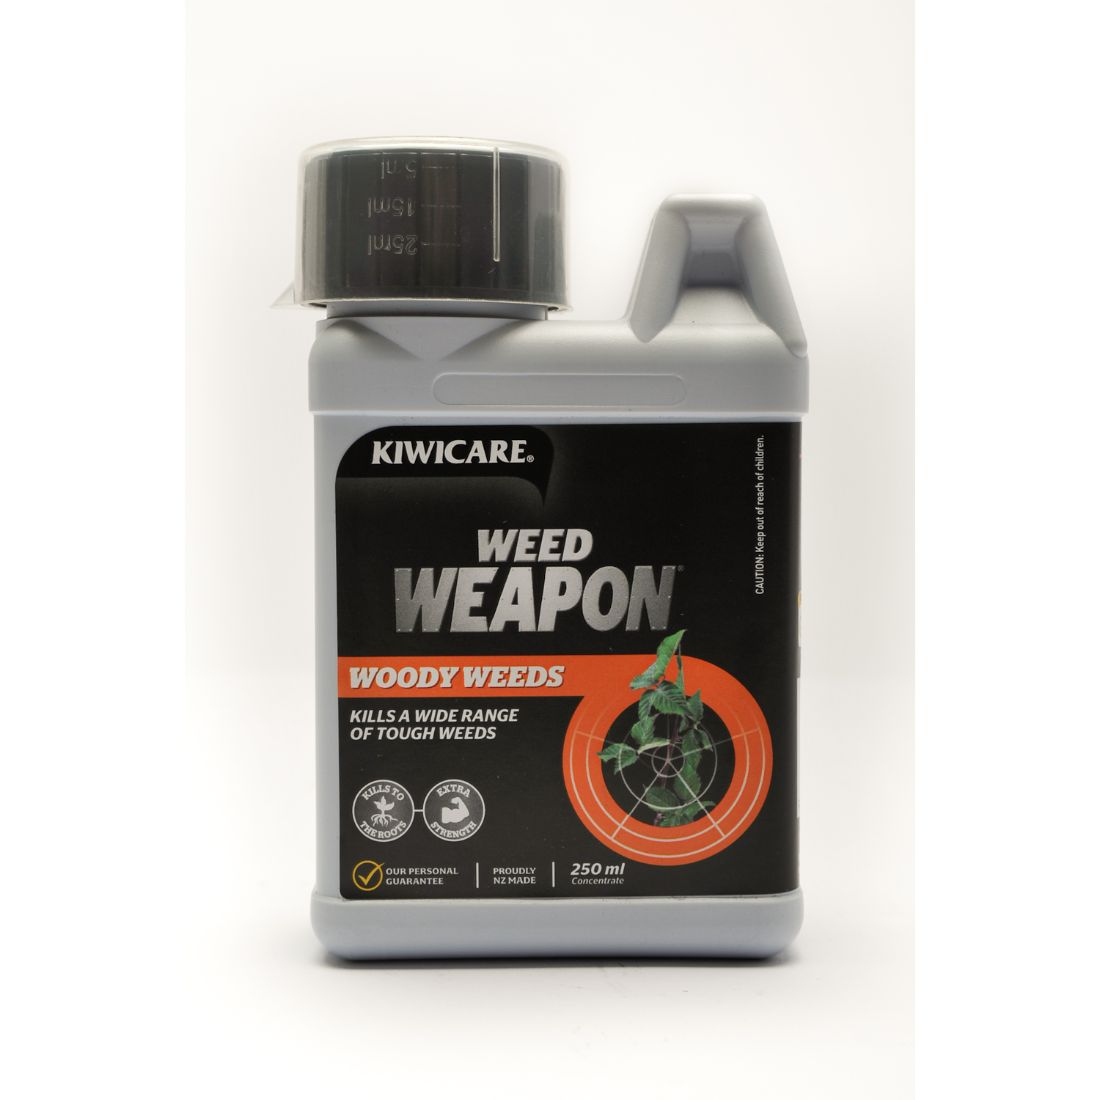 Weed Weapon Woody Weeds Herbicide Concentrate 200ml